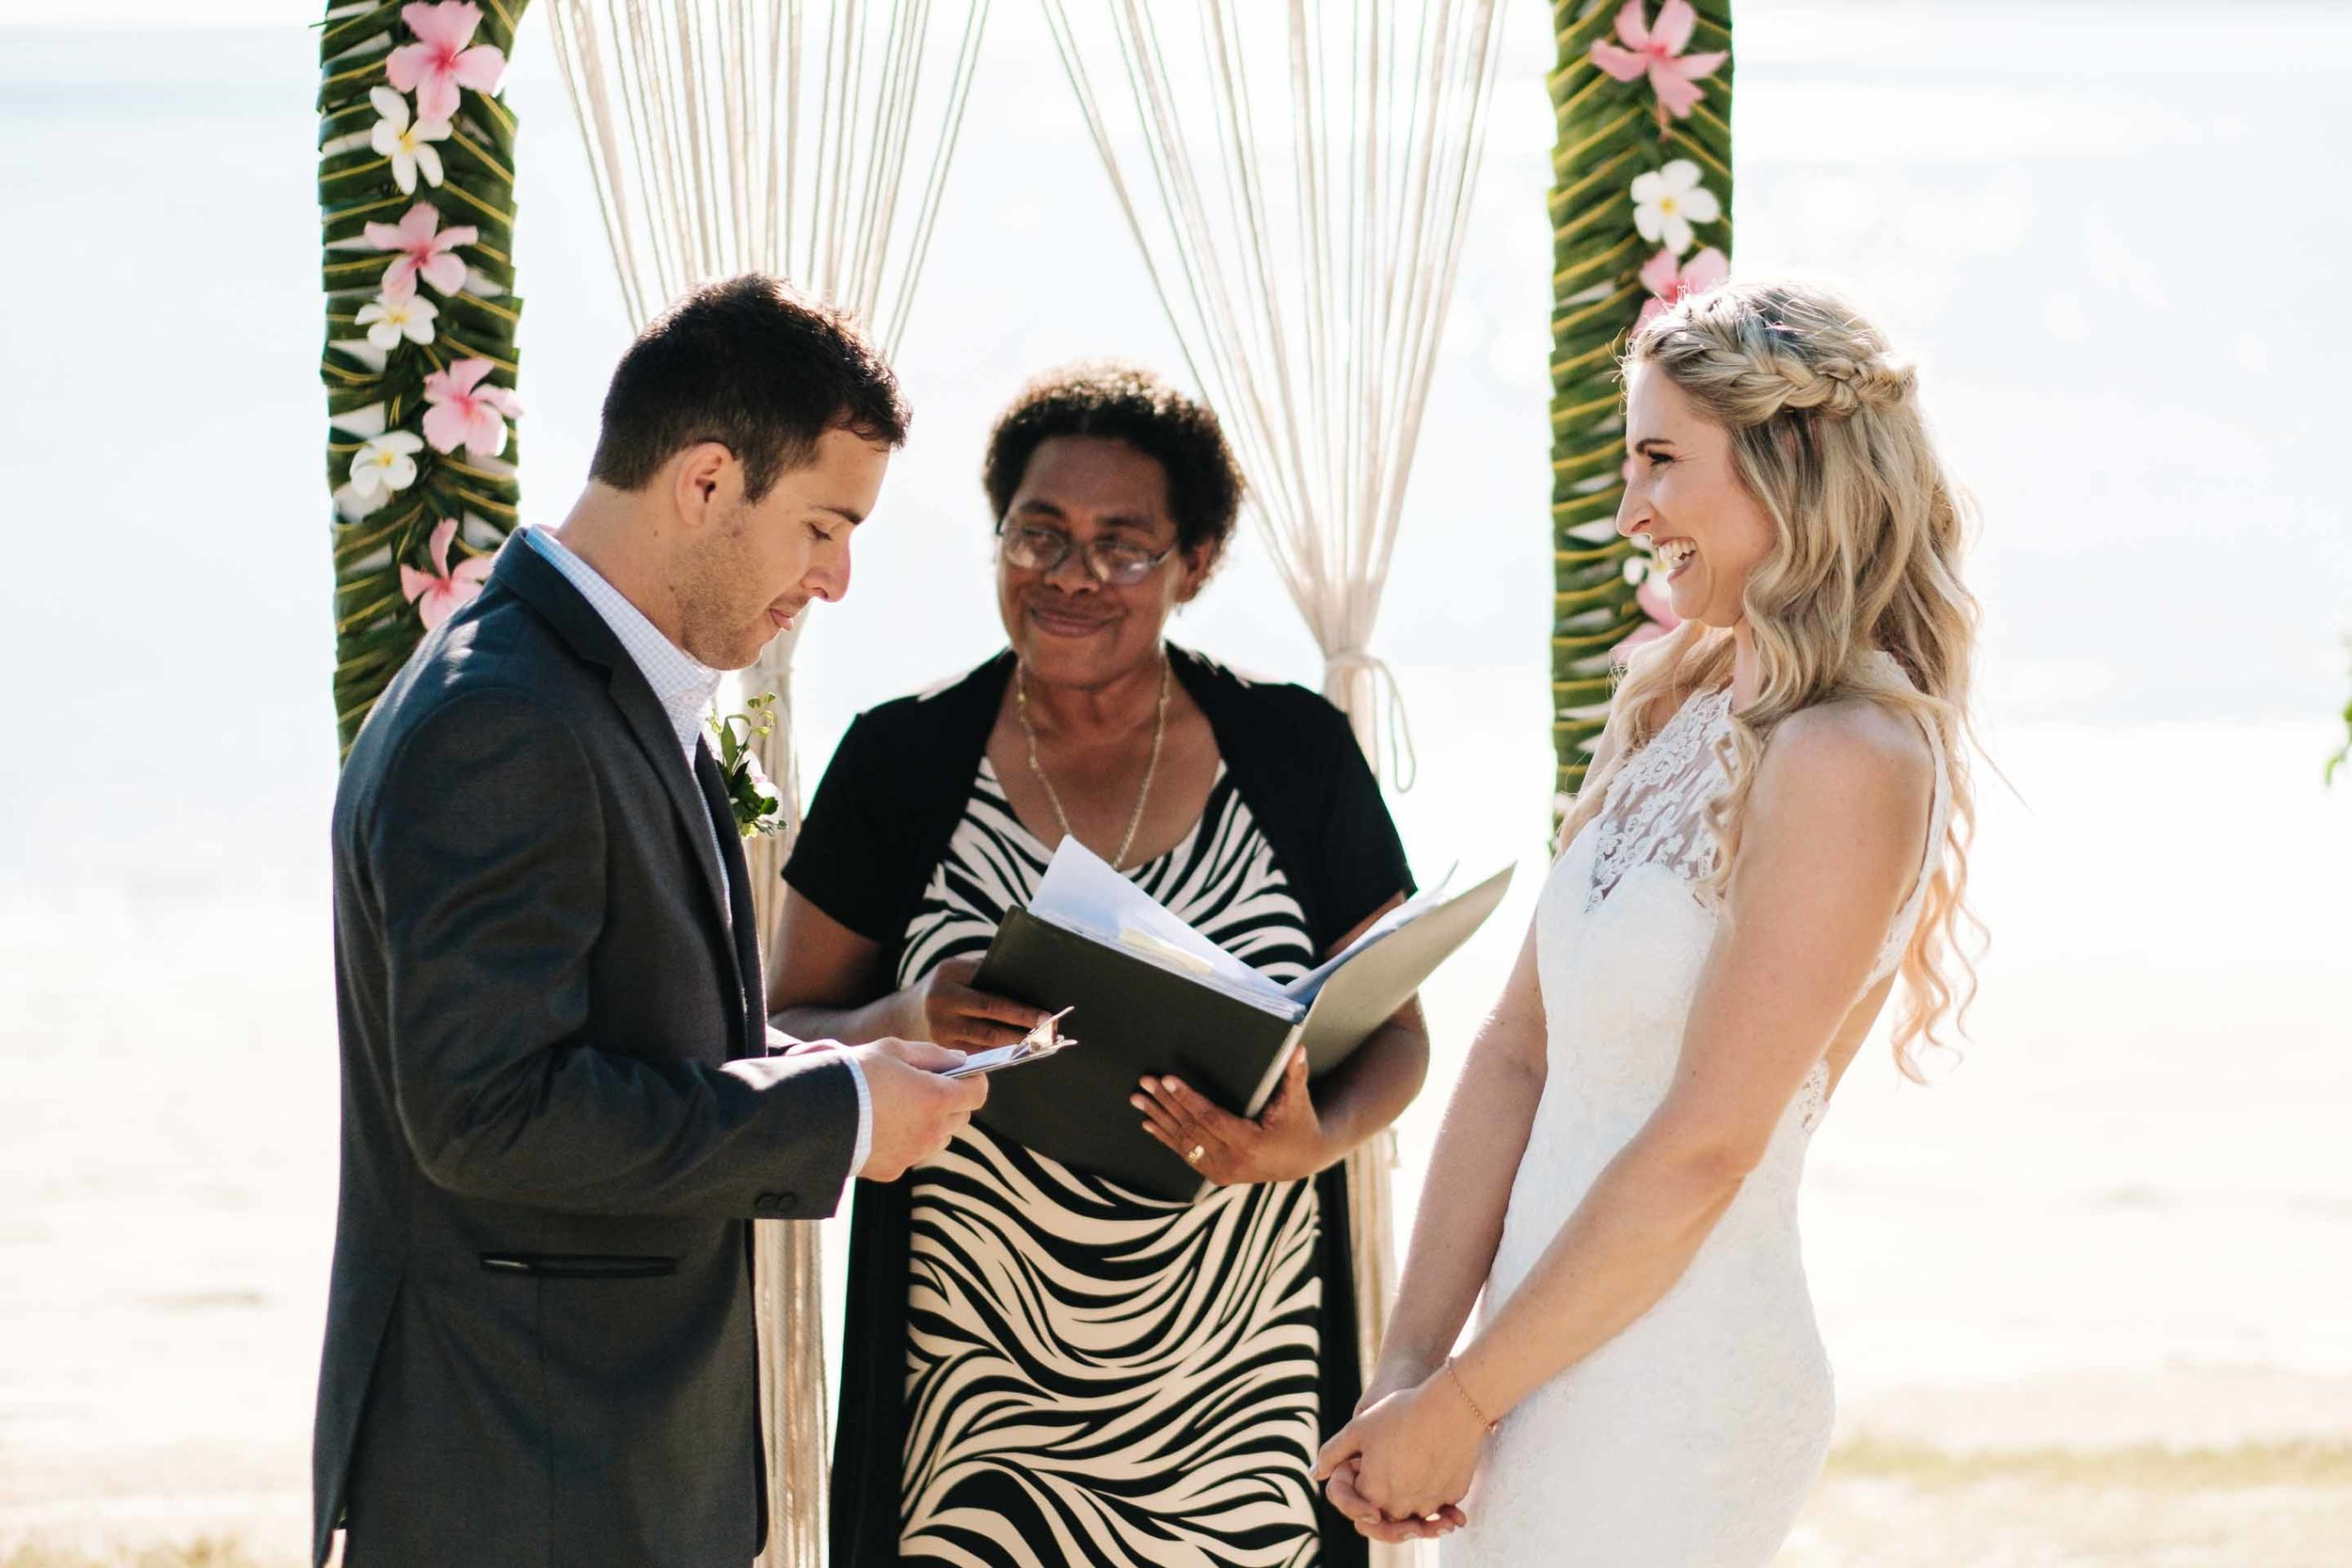 the groom reading out his wedding vows